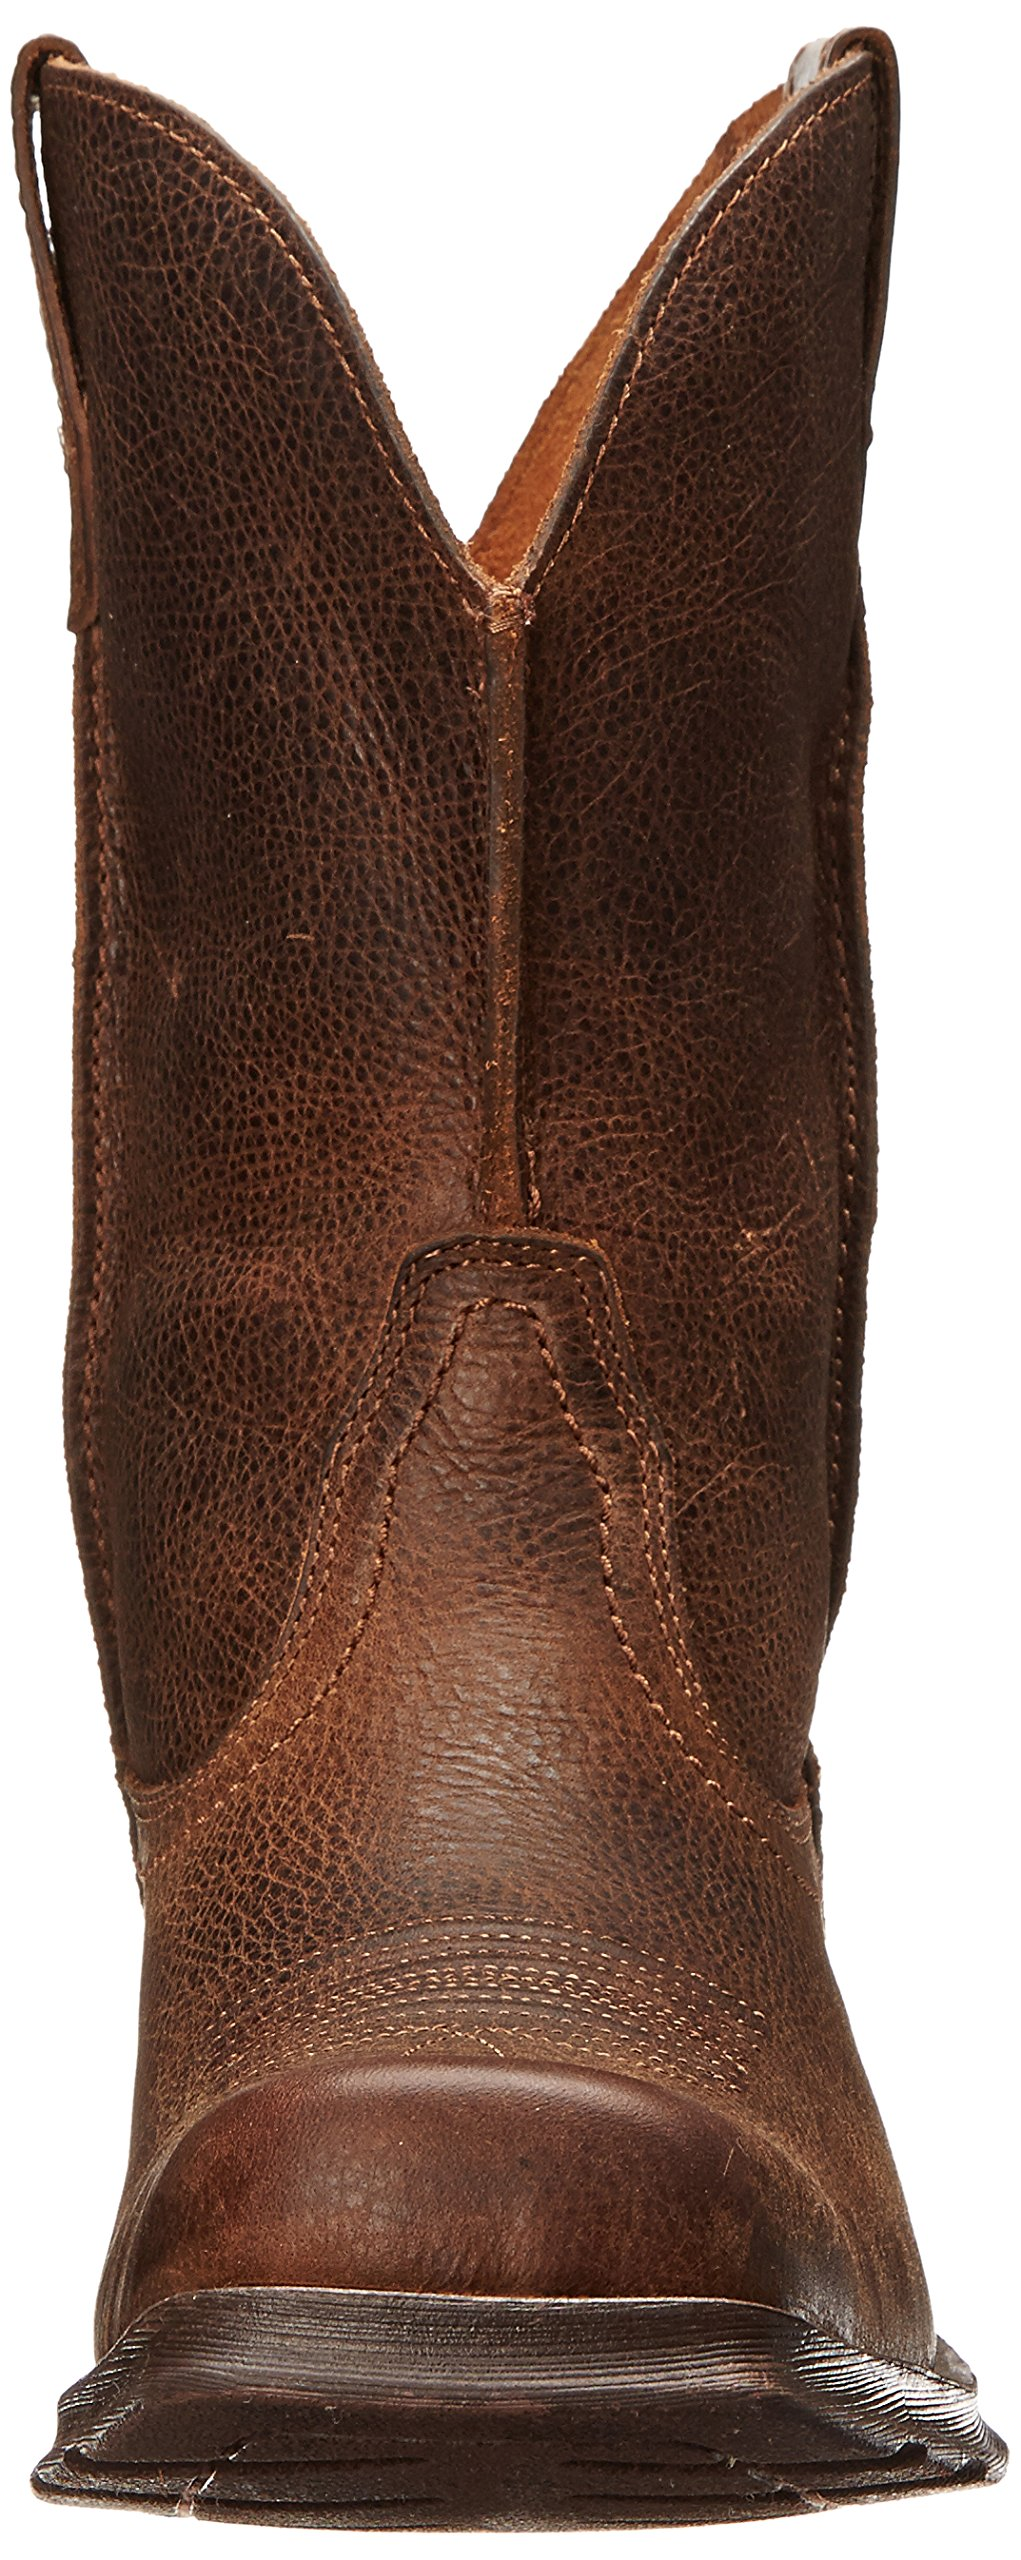 Ariat Men's Rambler Wide Square Toe Western Cowboy Boot, Wicker, 10 M US by ARIAT (Image #4)